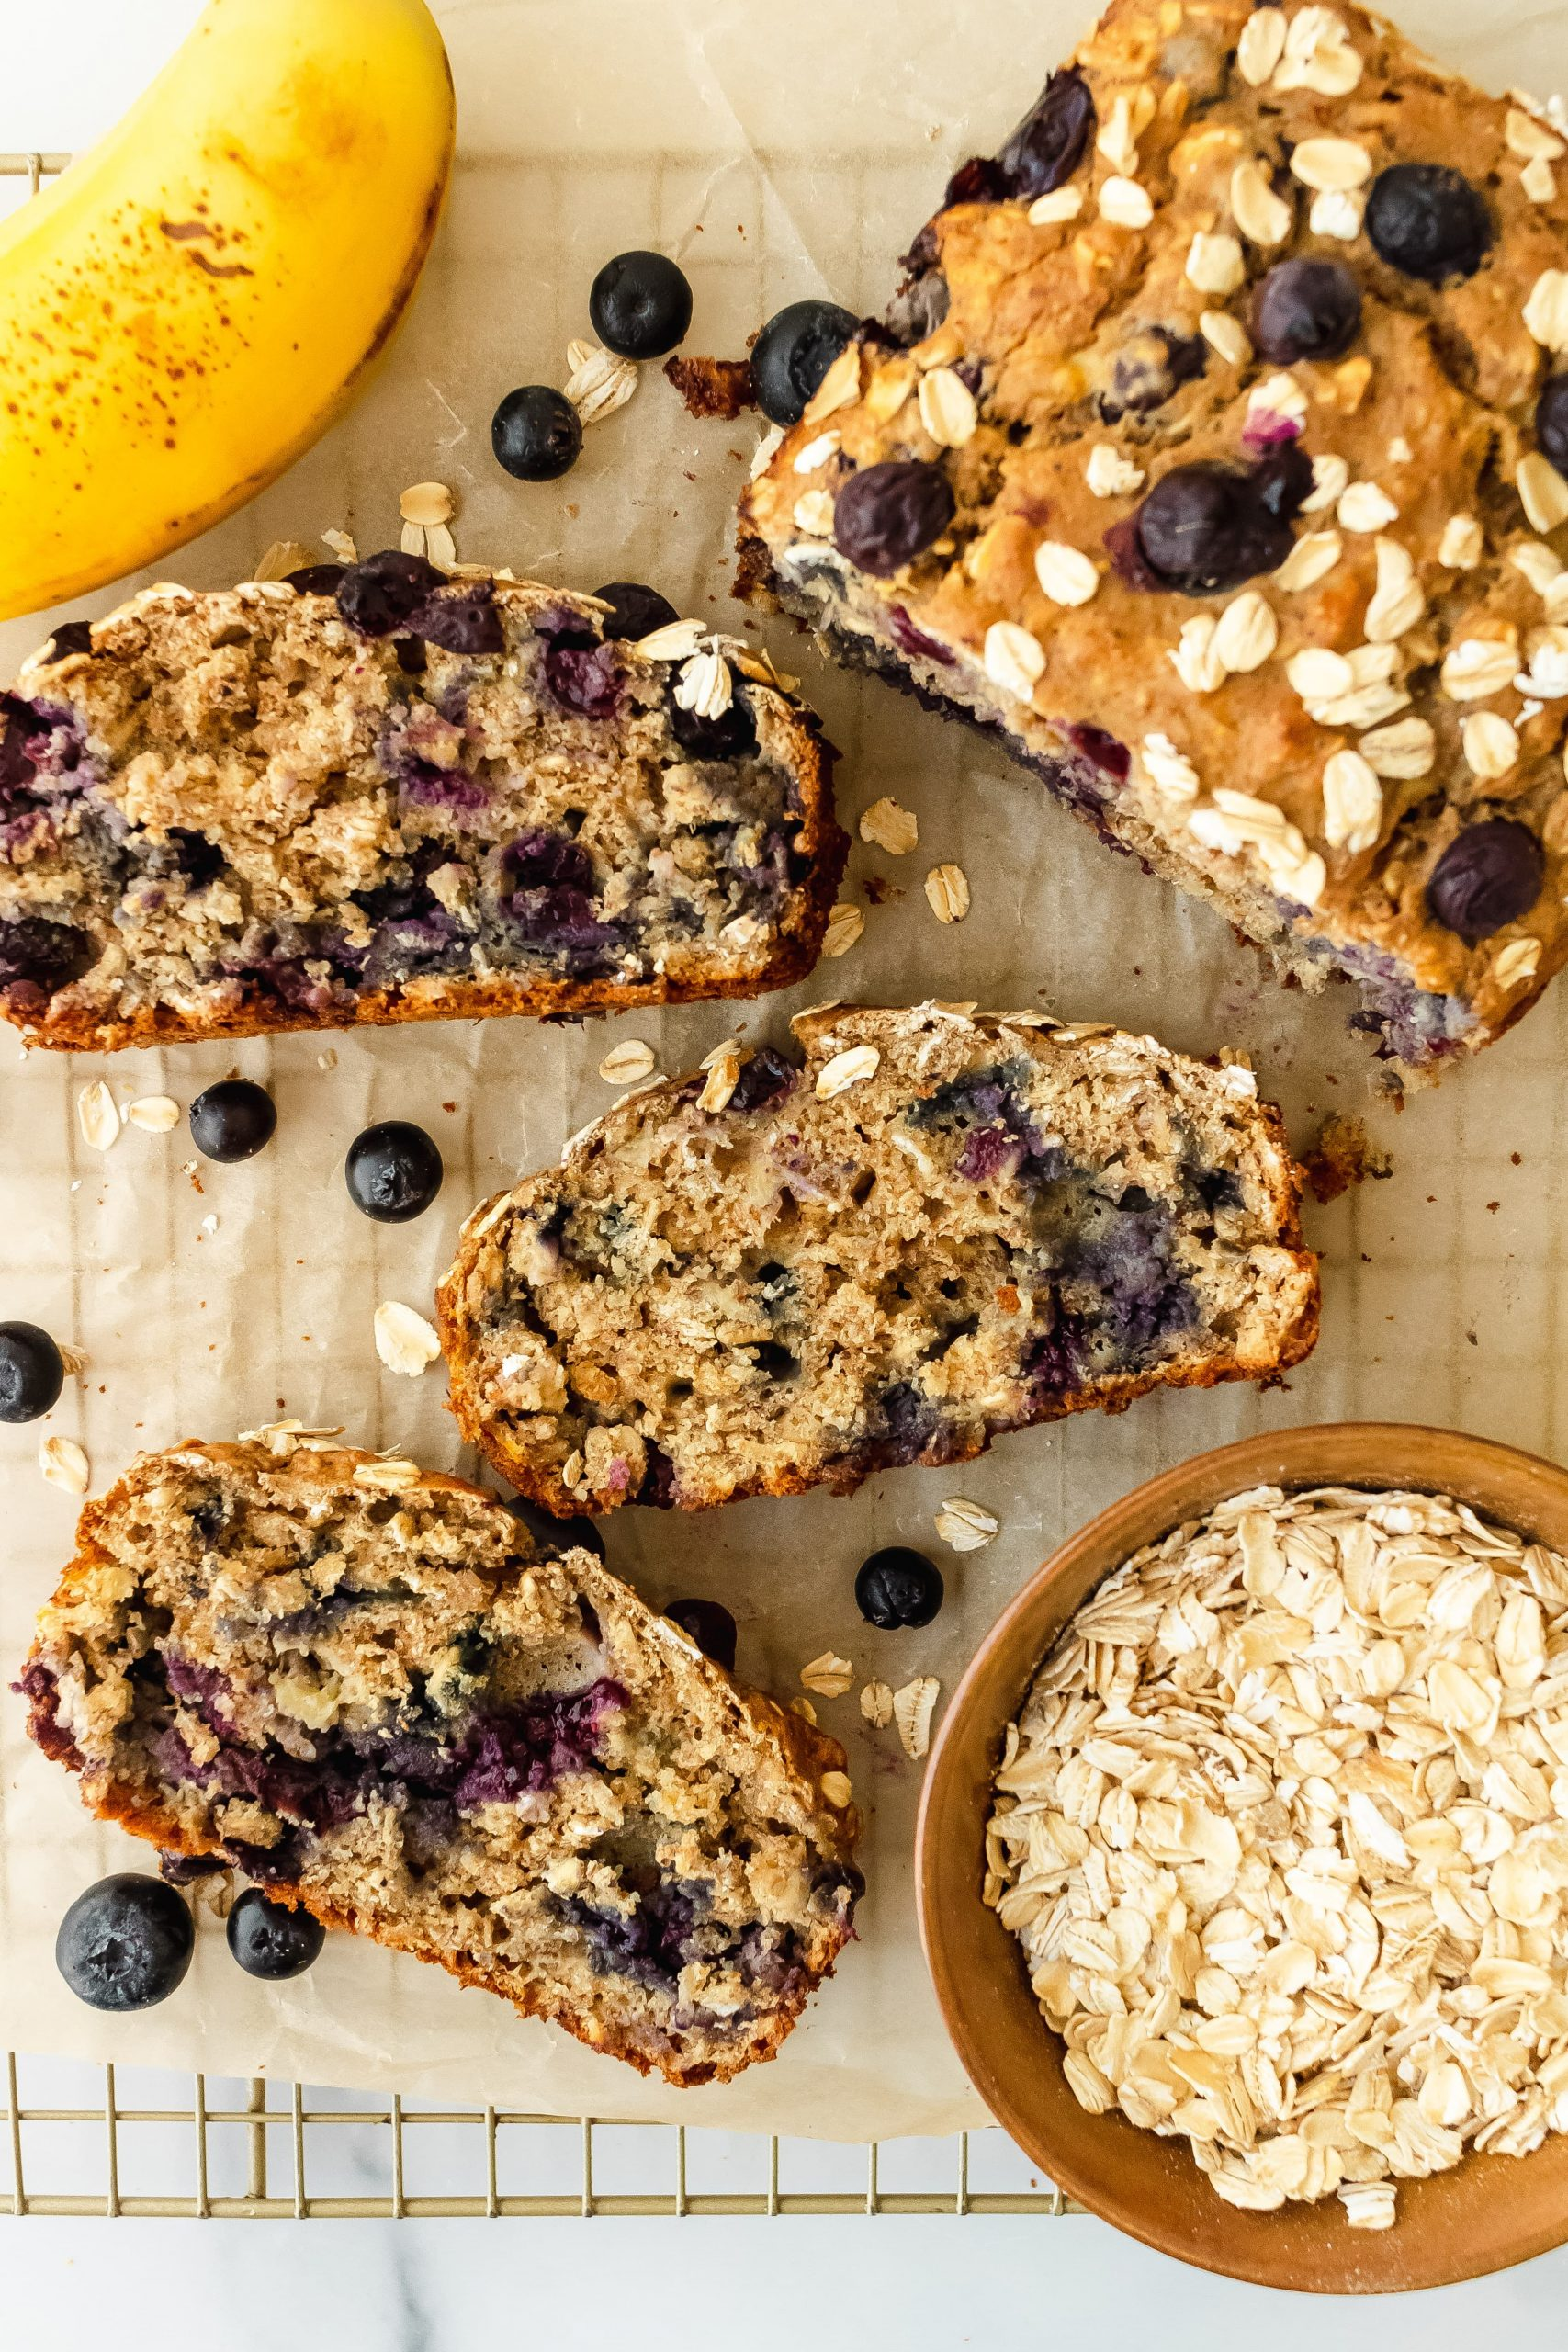 Honey Oat Blueberry Banana Bread